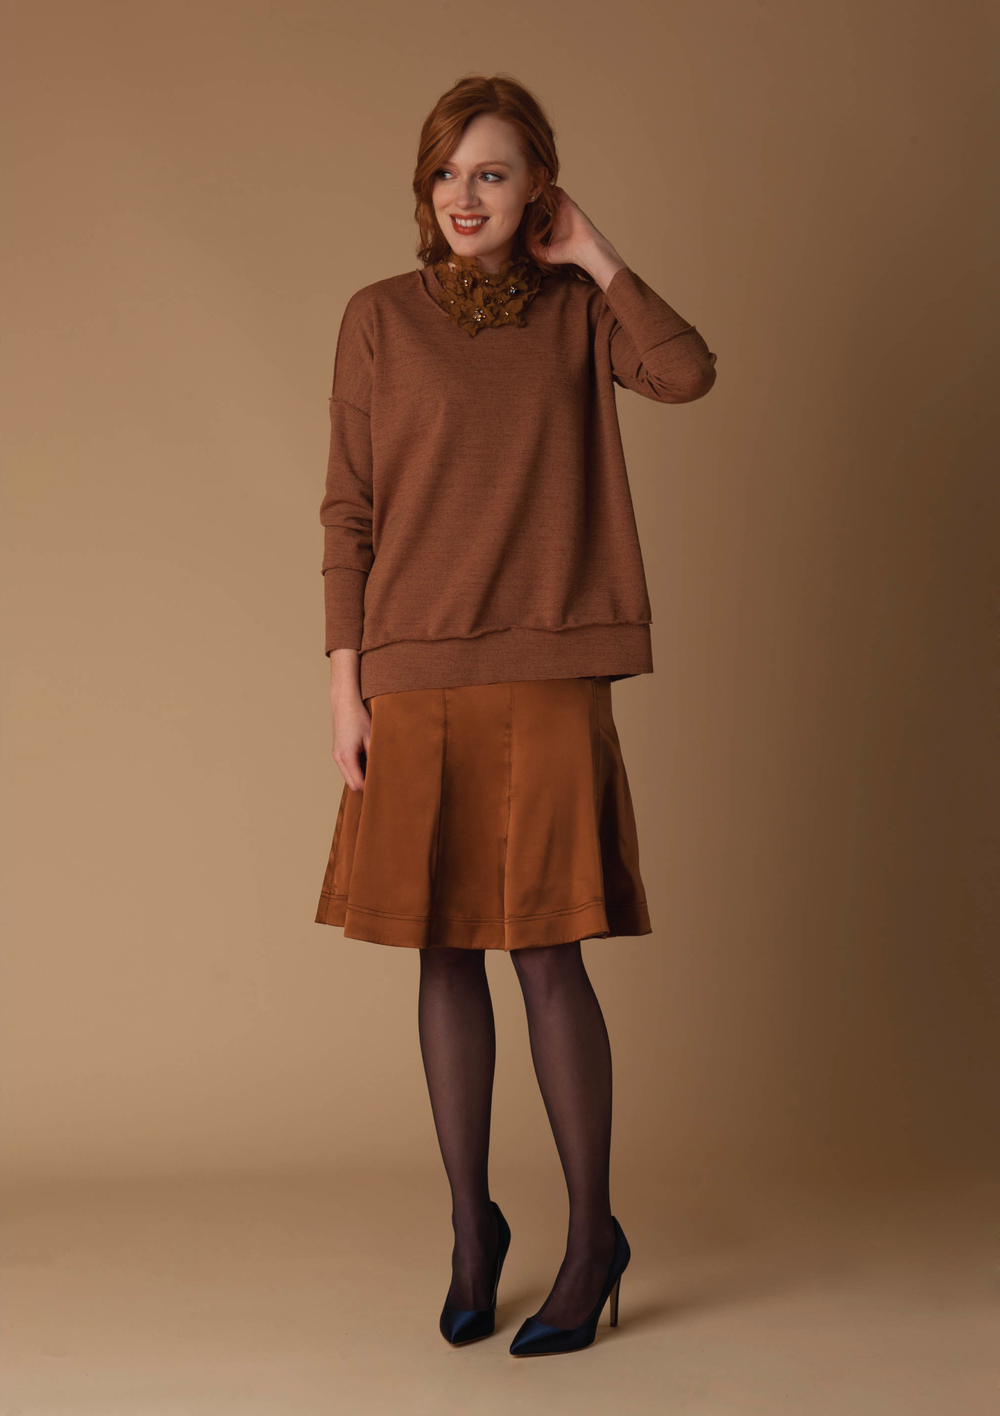 knit crepe sweatshirt  camel   seamed stretch silk charmeuse skirt  nutmeg   embroidered silk chiffon necklace with crystals  honey